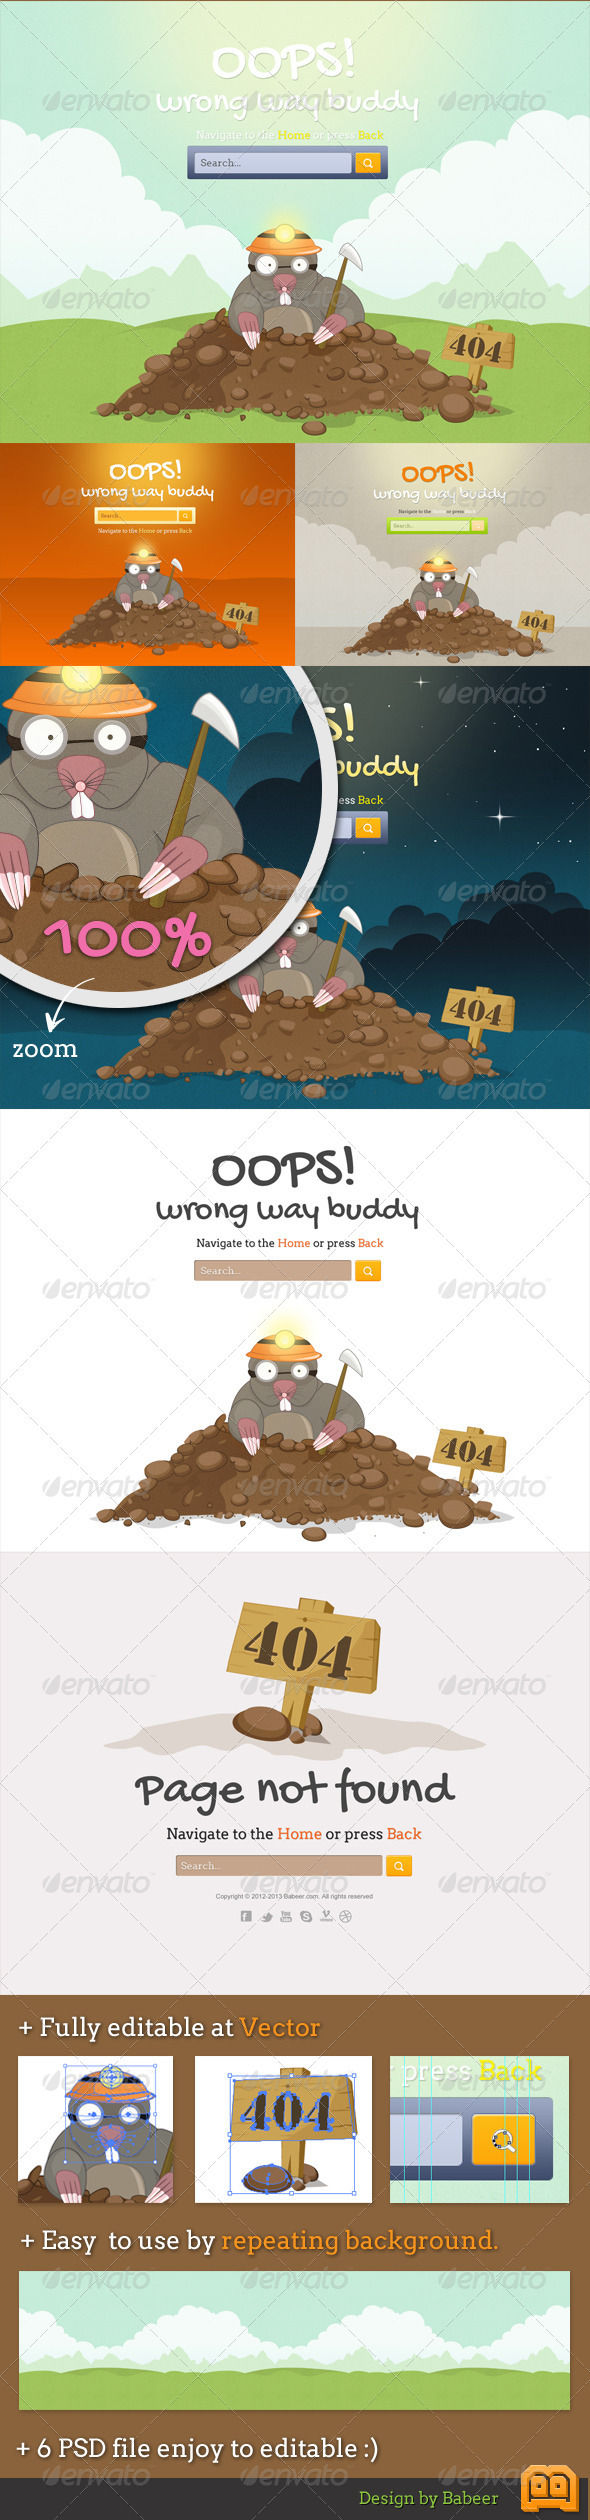 Mole Error Pages by AddtoFavorites (layered 404 page template)